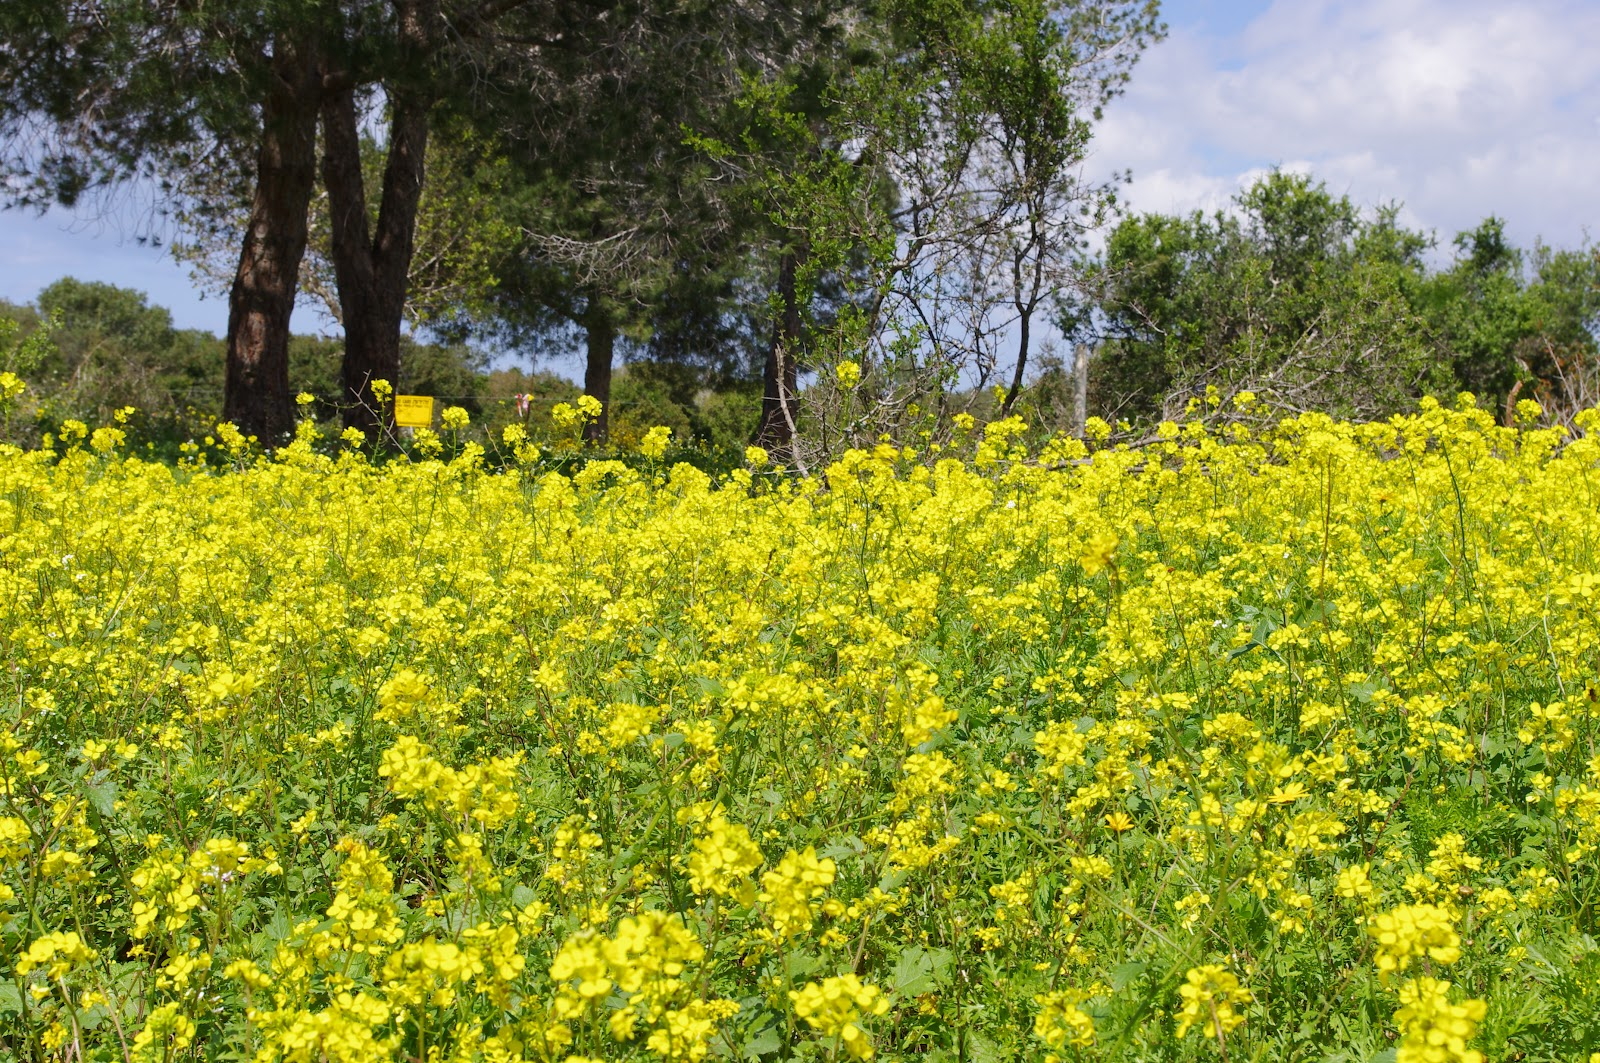 A letter from israel the wild mustard flowers of israel the flowers usually grow to about waist high but i have walked through fields where the mustard flowers touched my shoulders one magical spring day mightylinksfo